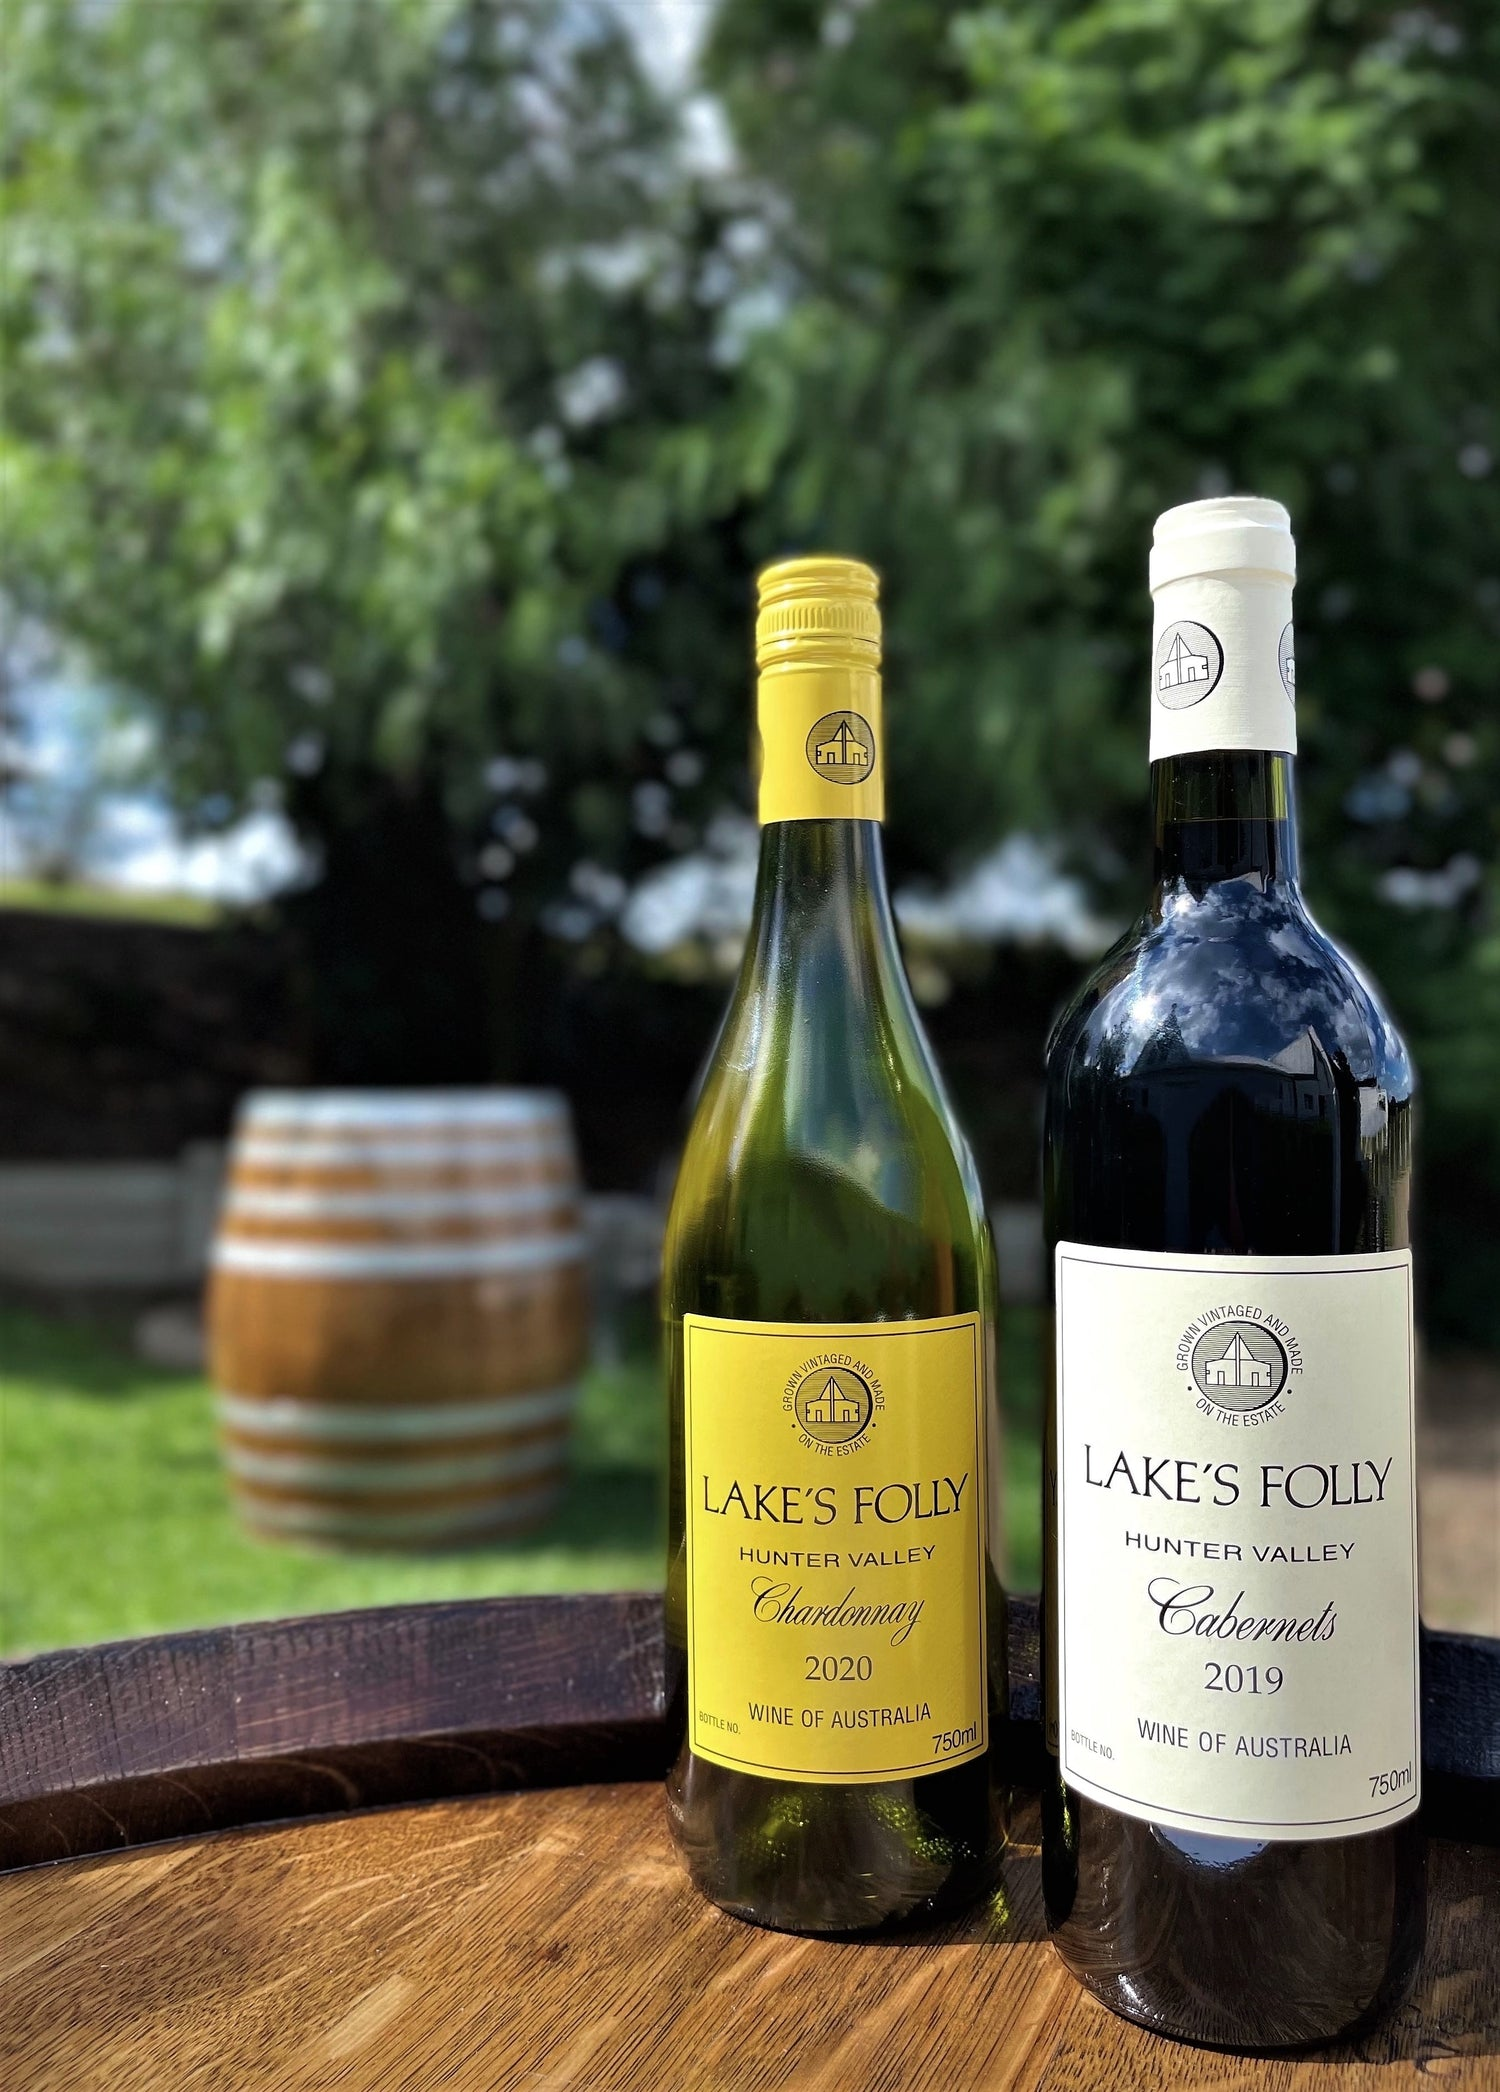 NEW RELEASES | 2019 Cabernets & 2020 Chardonnay